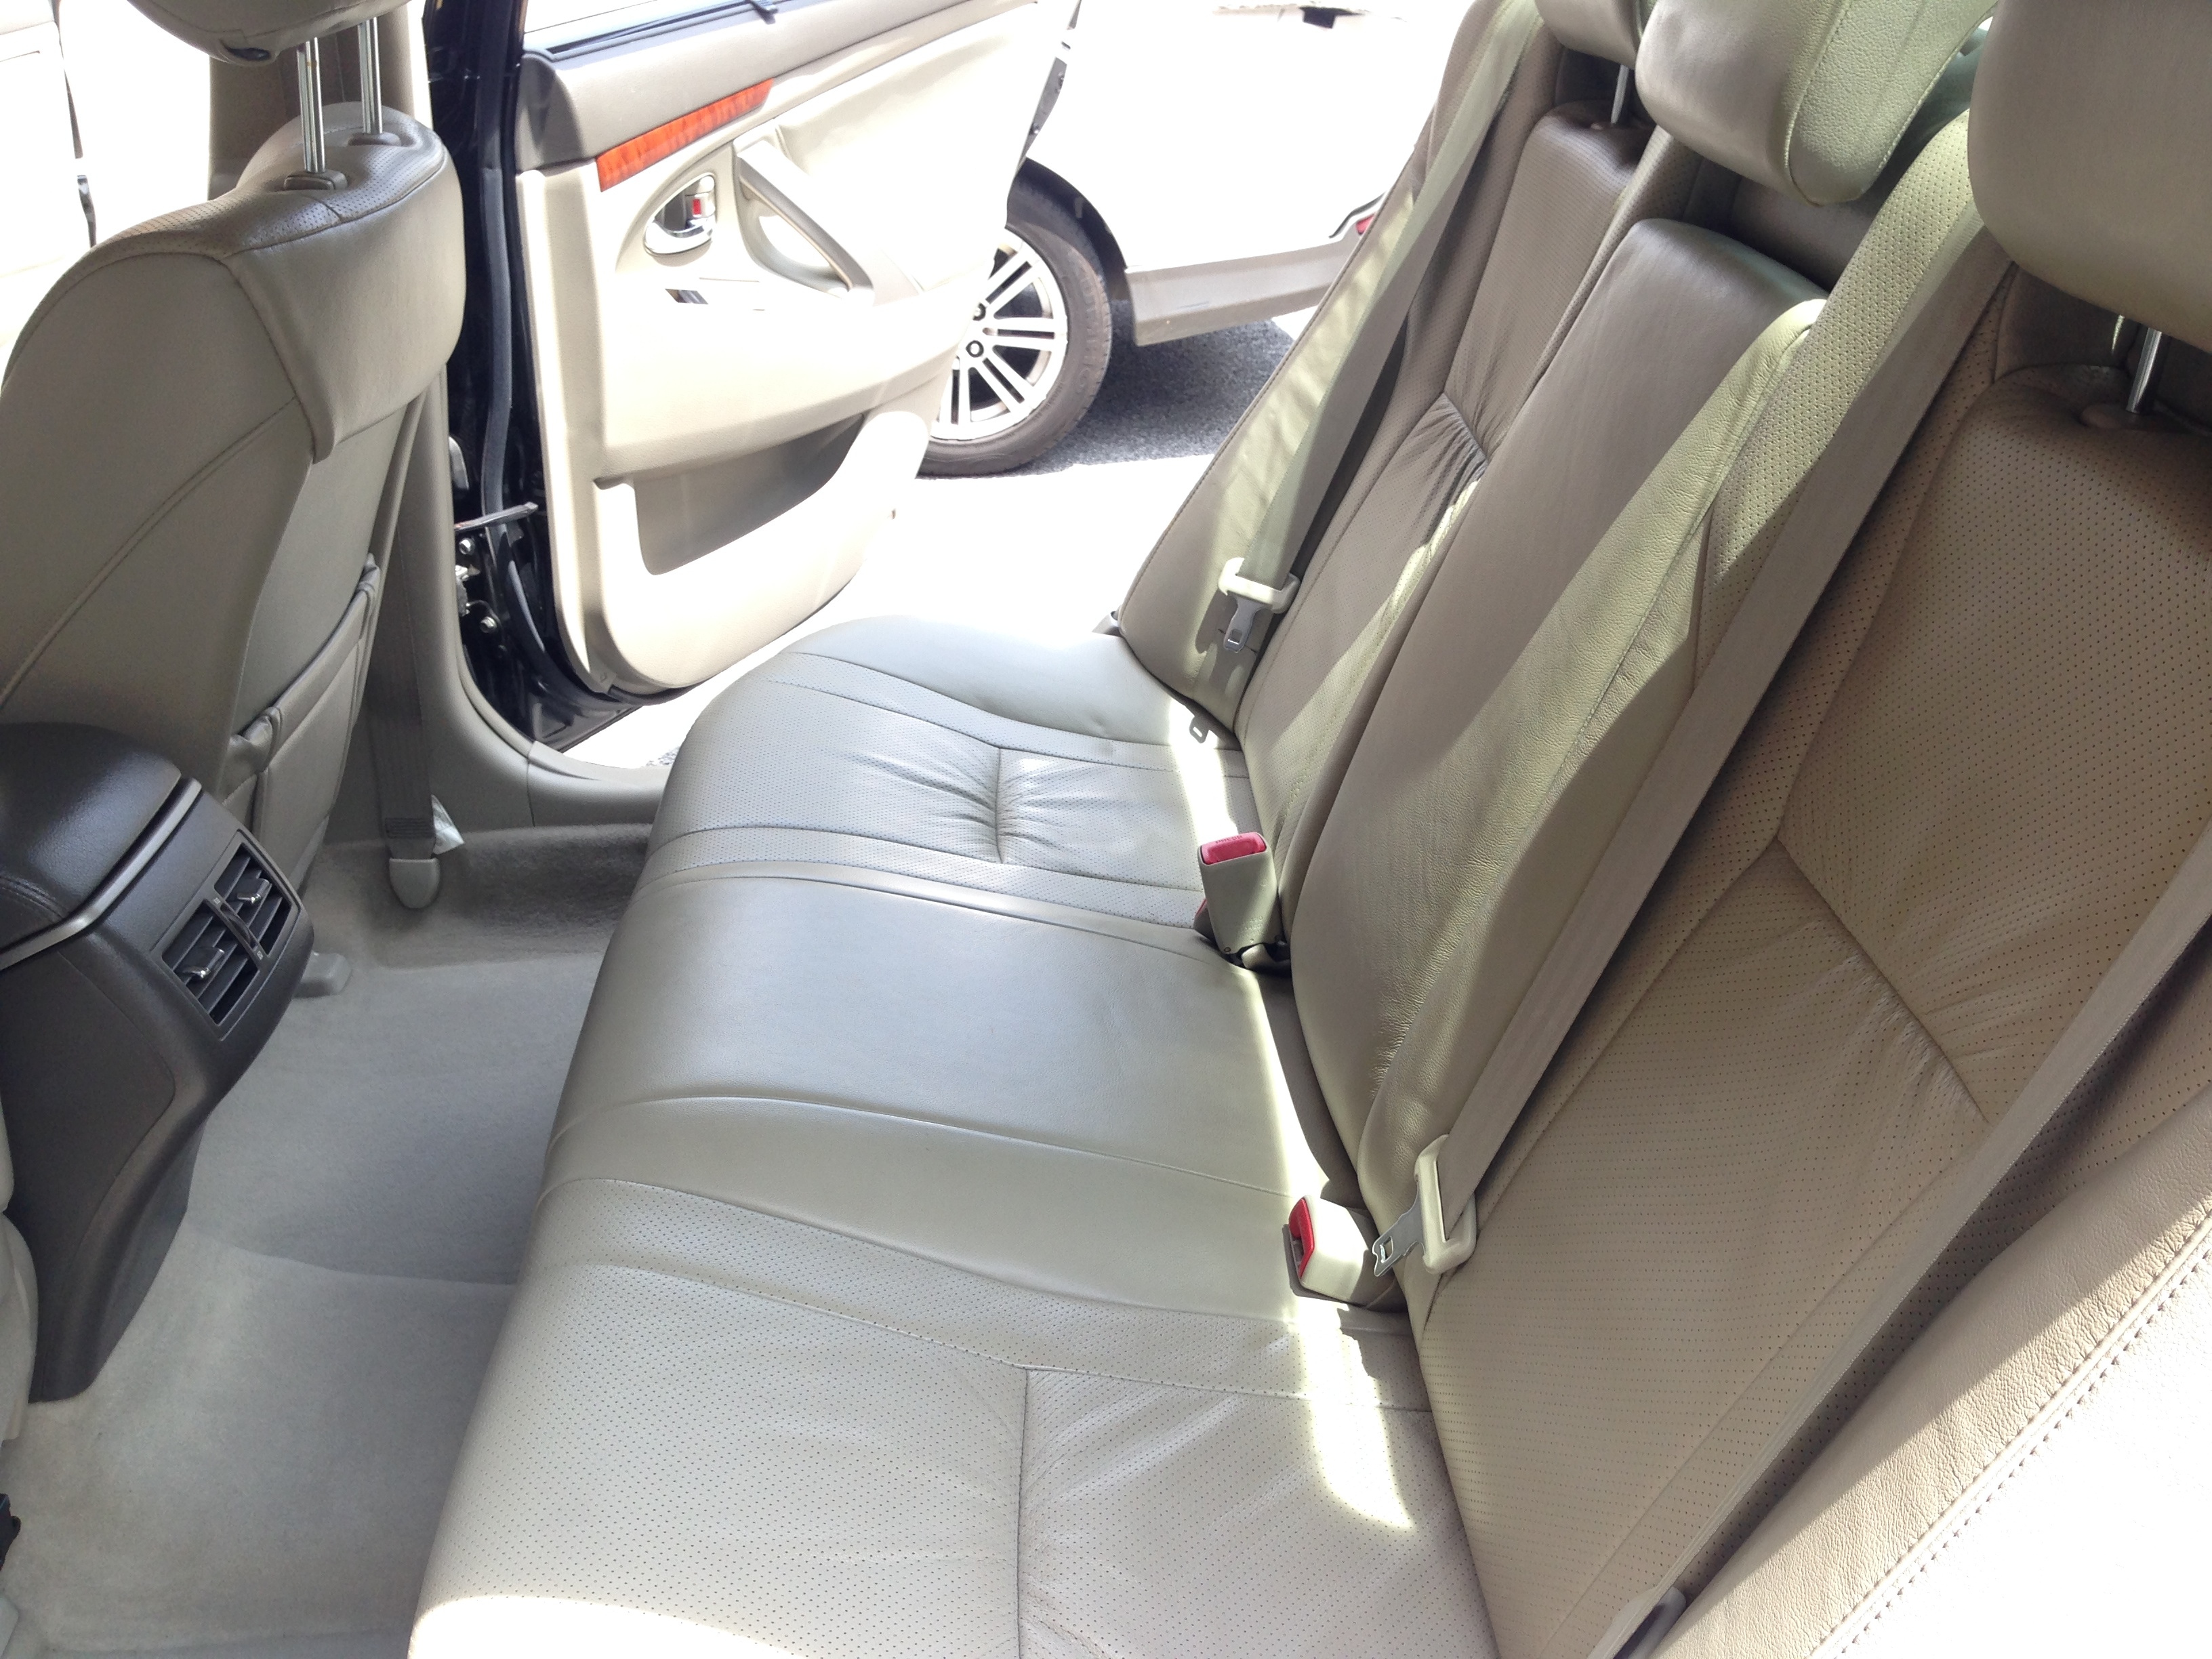 car mold 8 alphakleen professional carpet upholstery cleaning services kuala lumpur kl. Black Bedroom Furniture Sets. Home Design Ideas